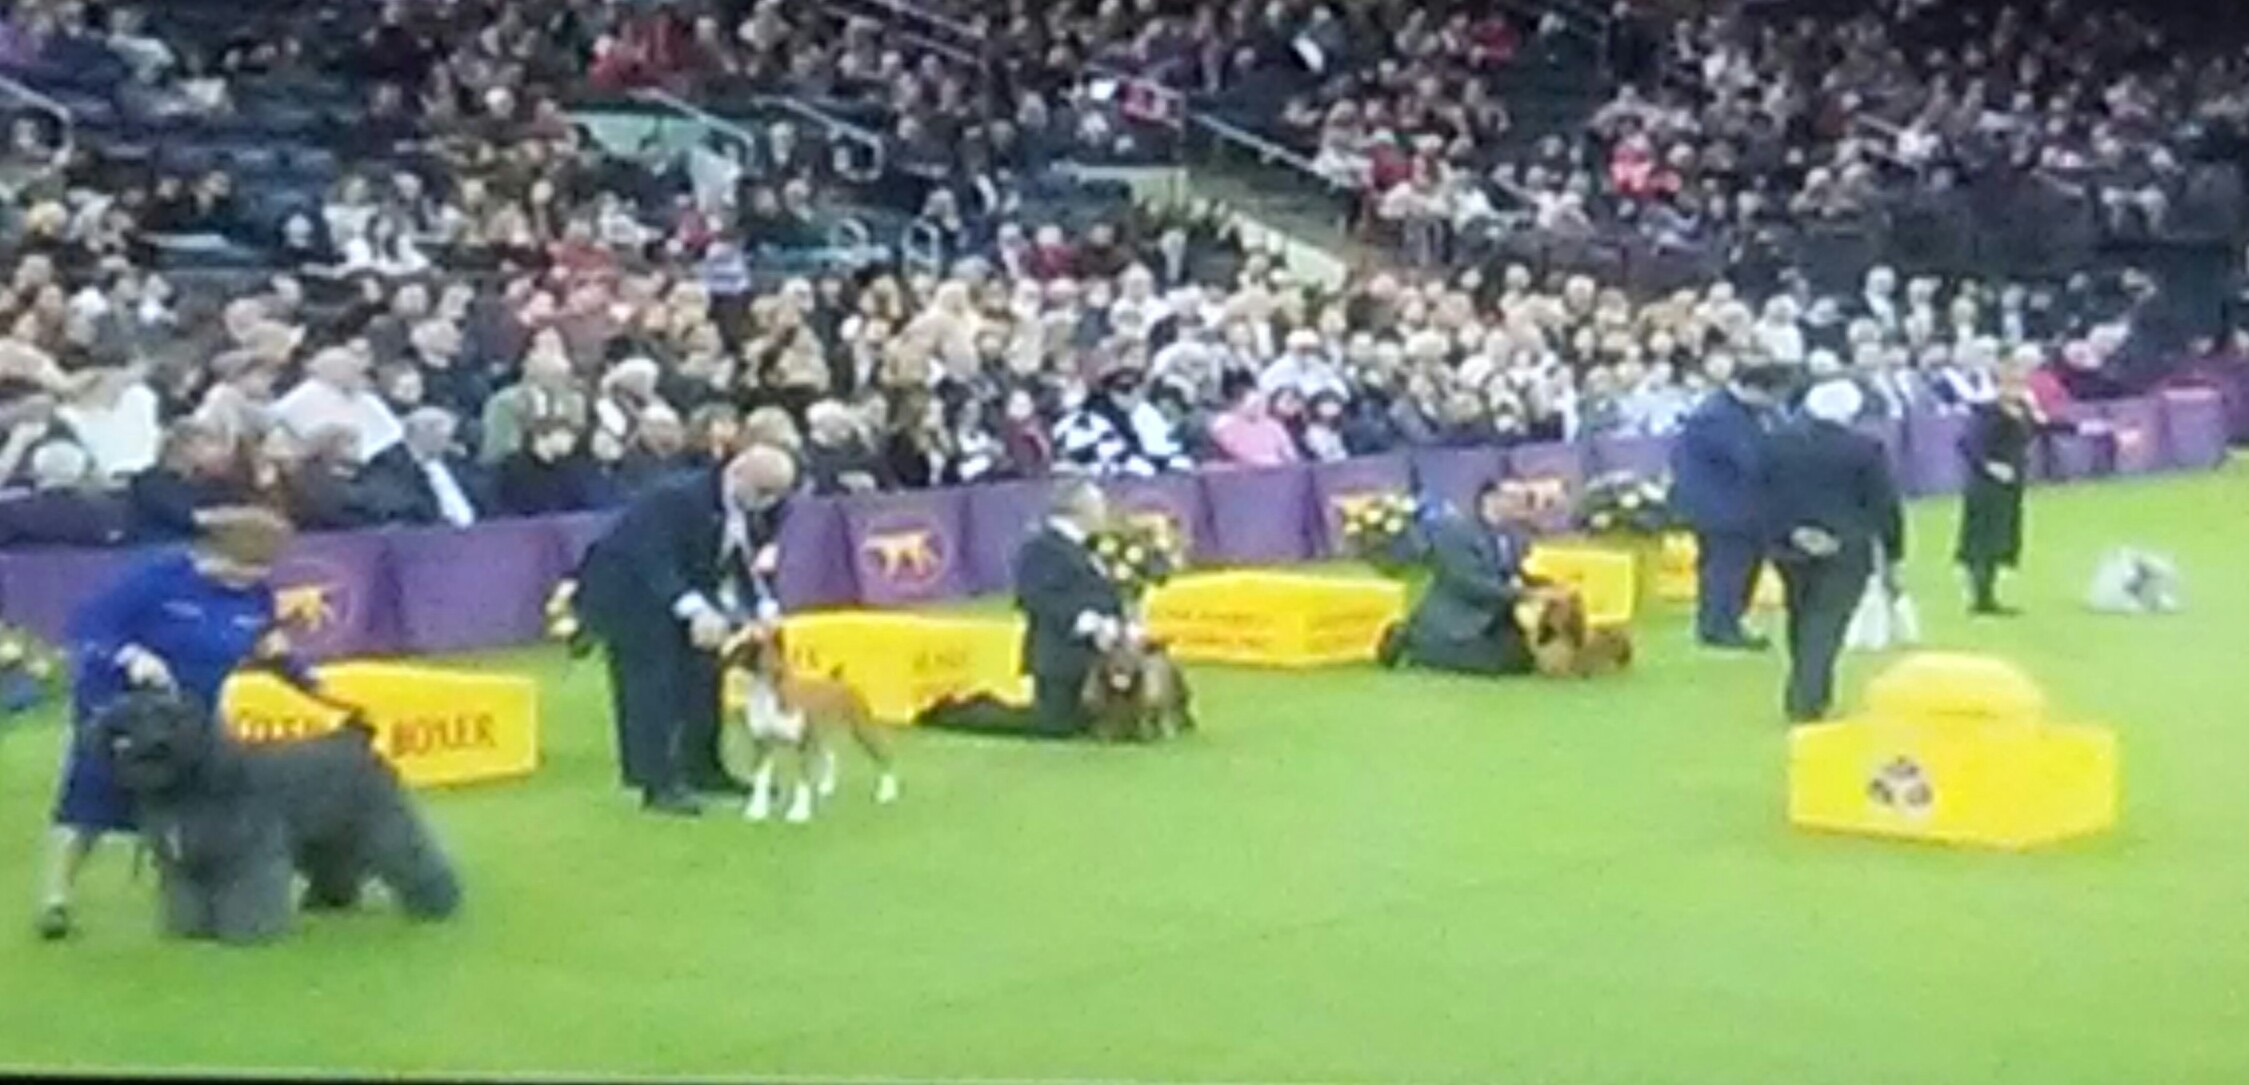 judging Best of Show Westminster dog show